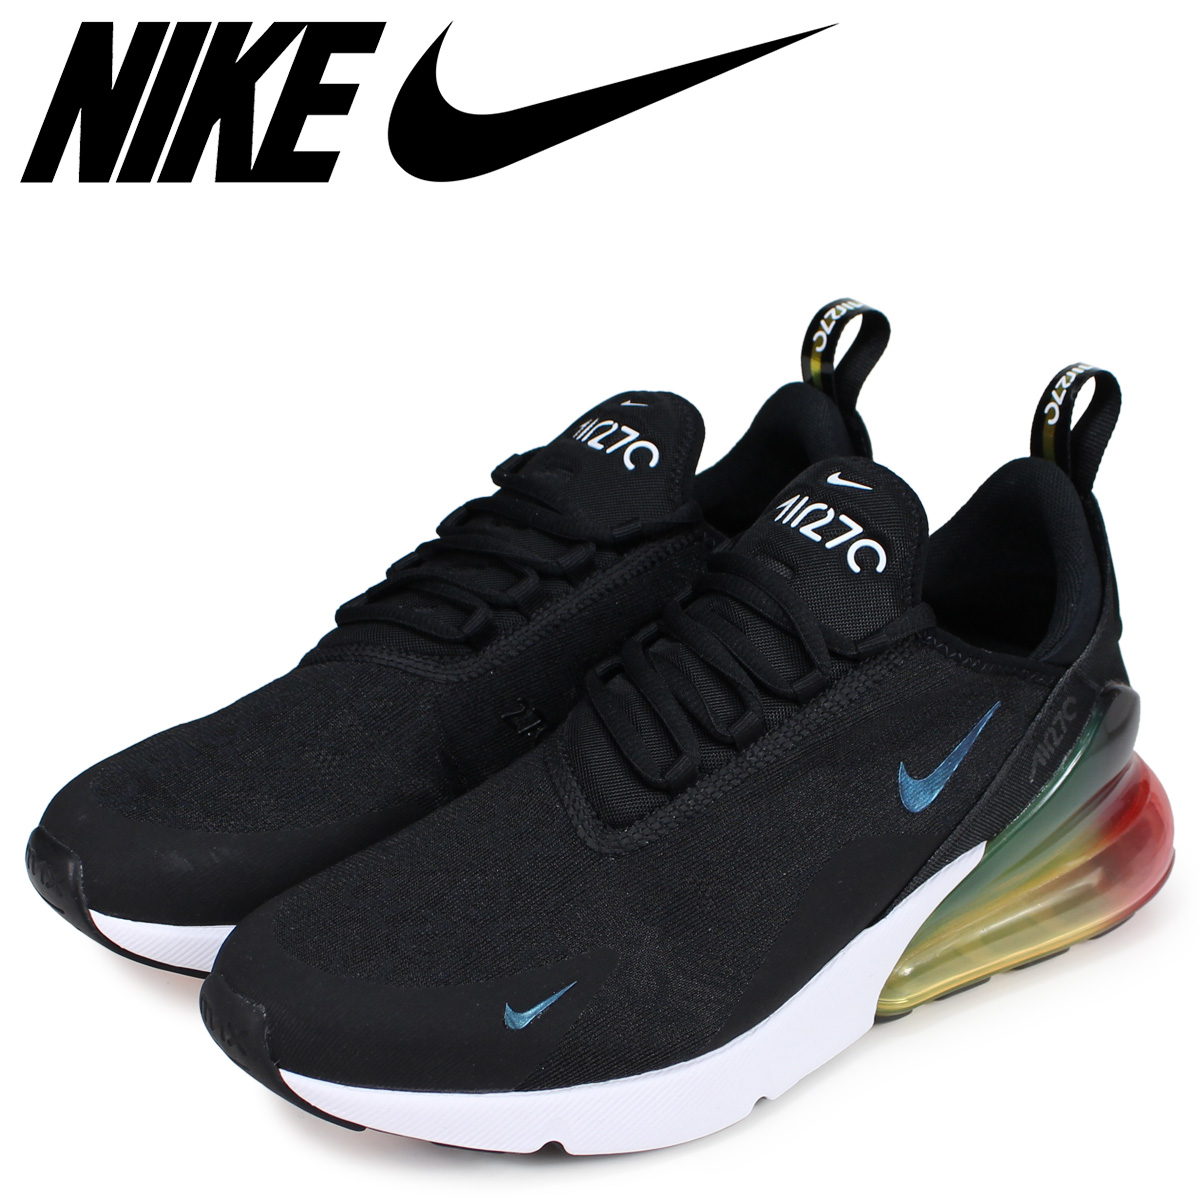 best sneakers be6f1 3c2ba NIKE Kie Ney AMAX 270 sneakers men AIR MAX 270 SE black black AQ9164-003 ...